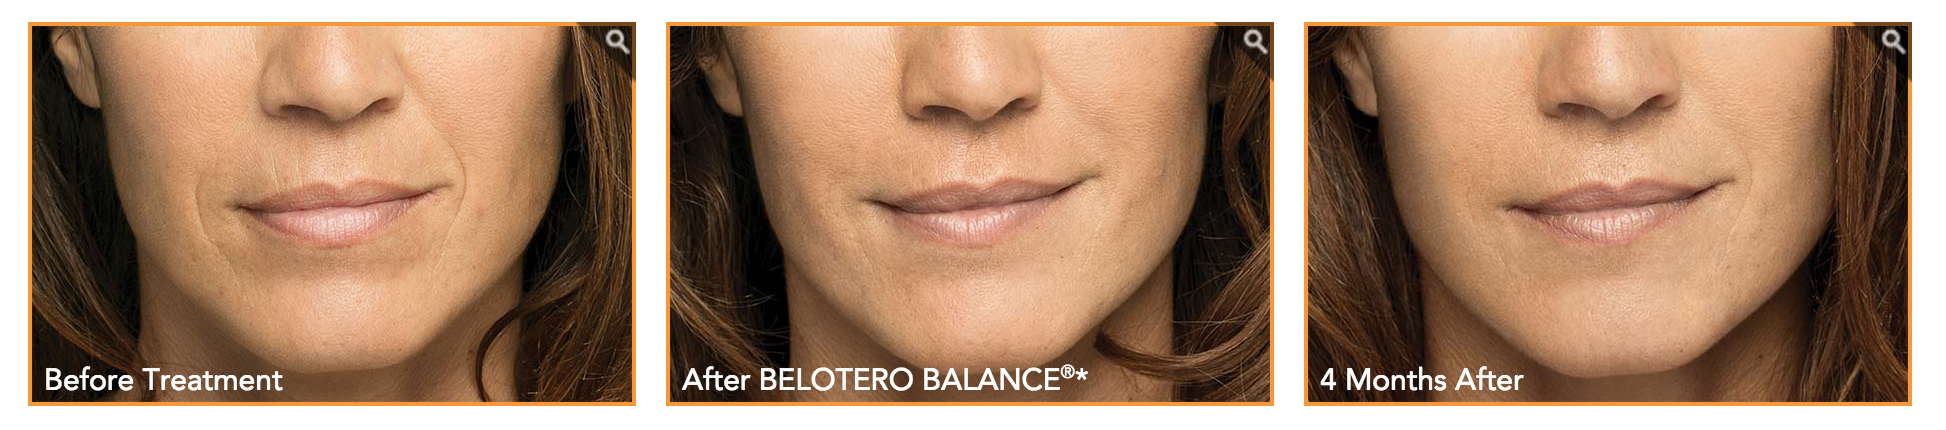 Belotero before and after results